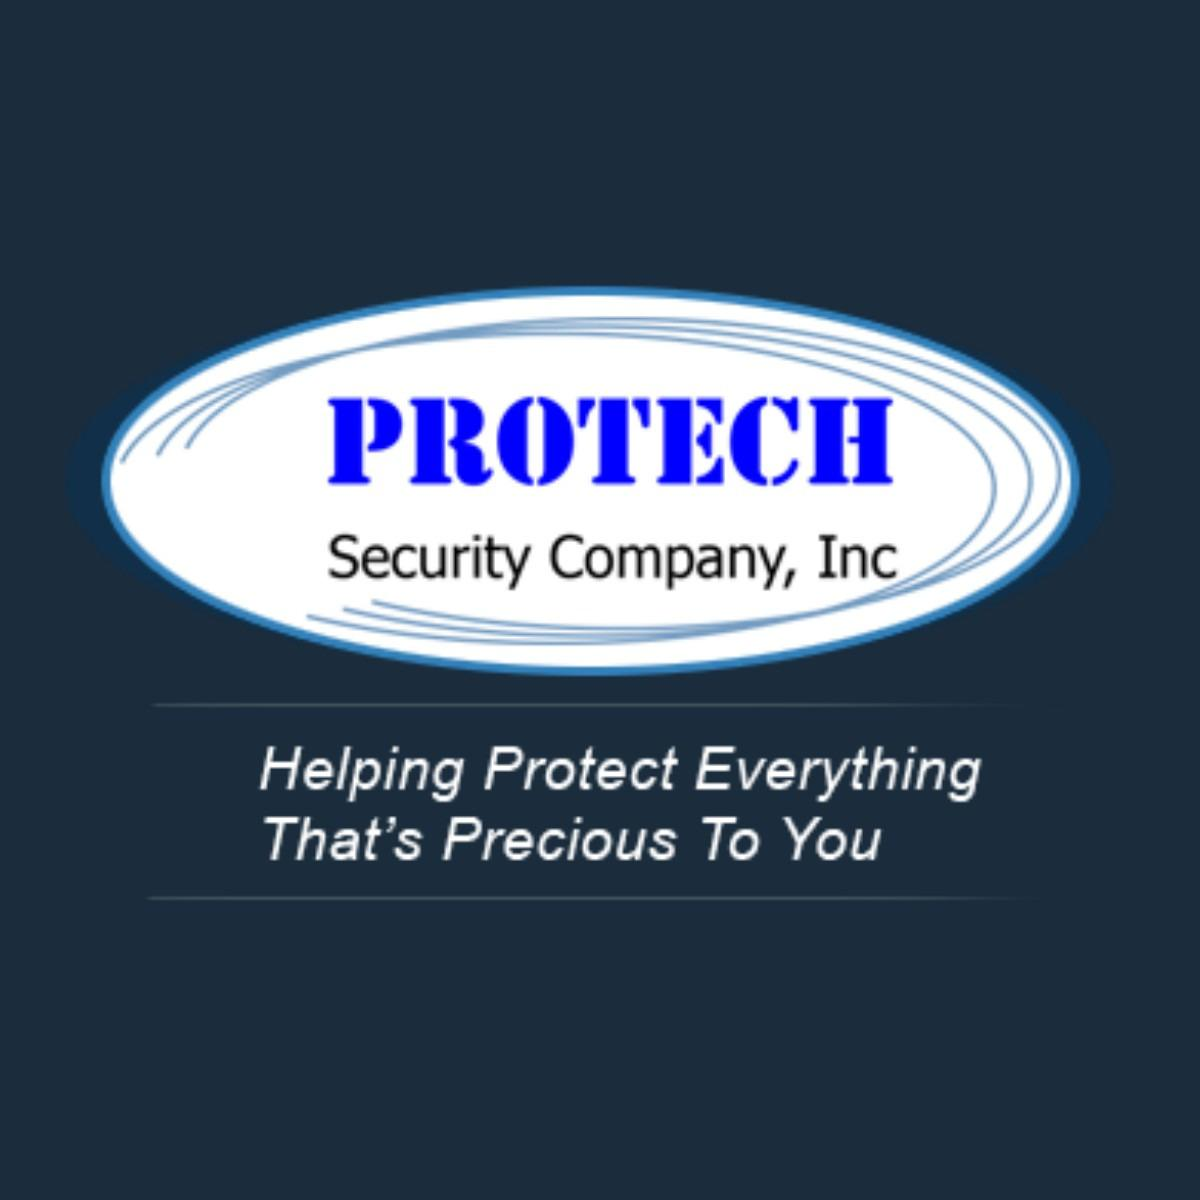 Protech Security Company, Inc - ADT Authorized Dealer image 5